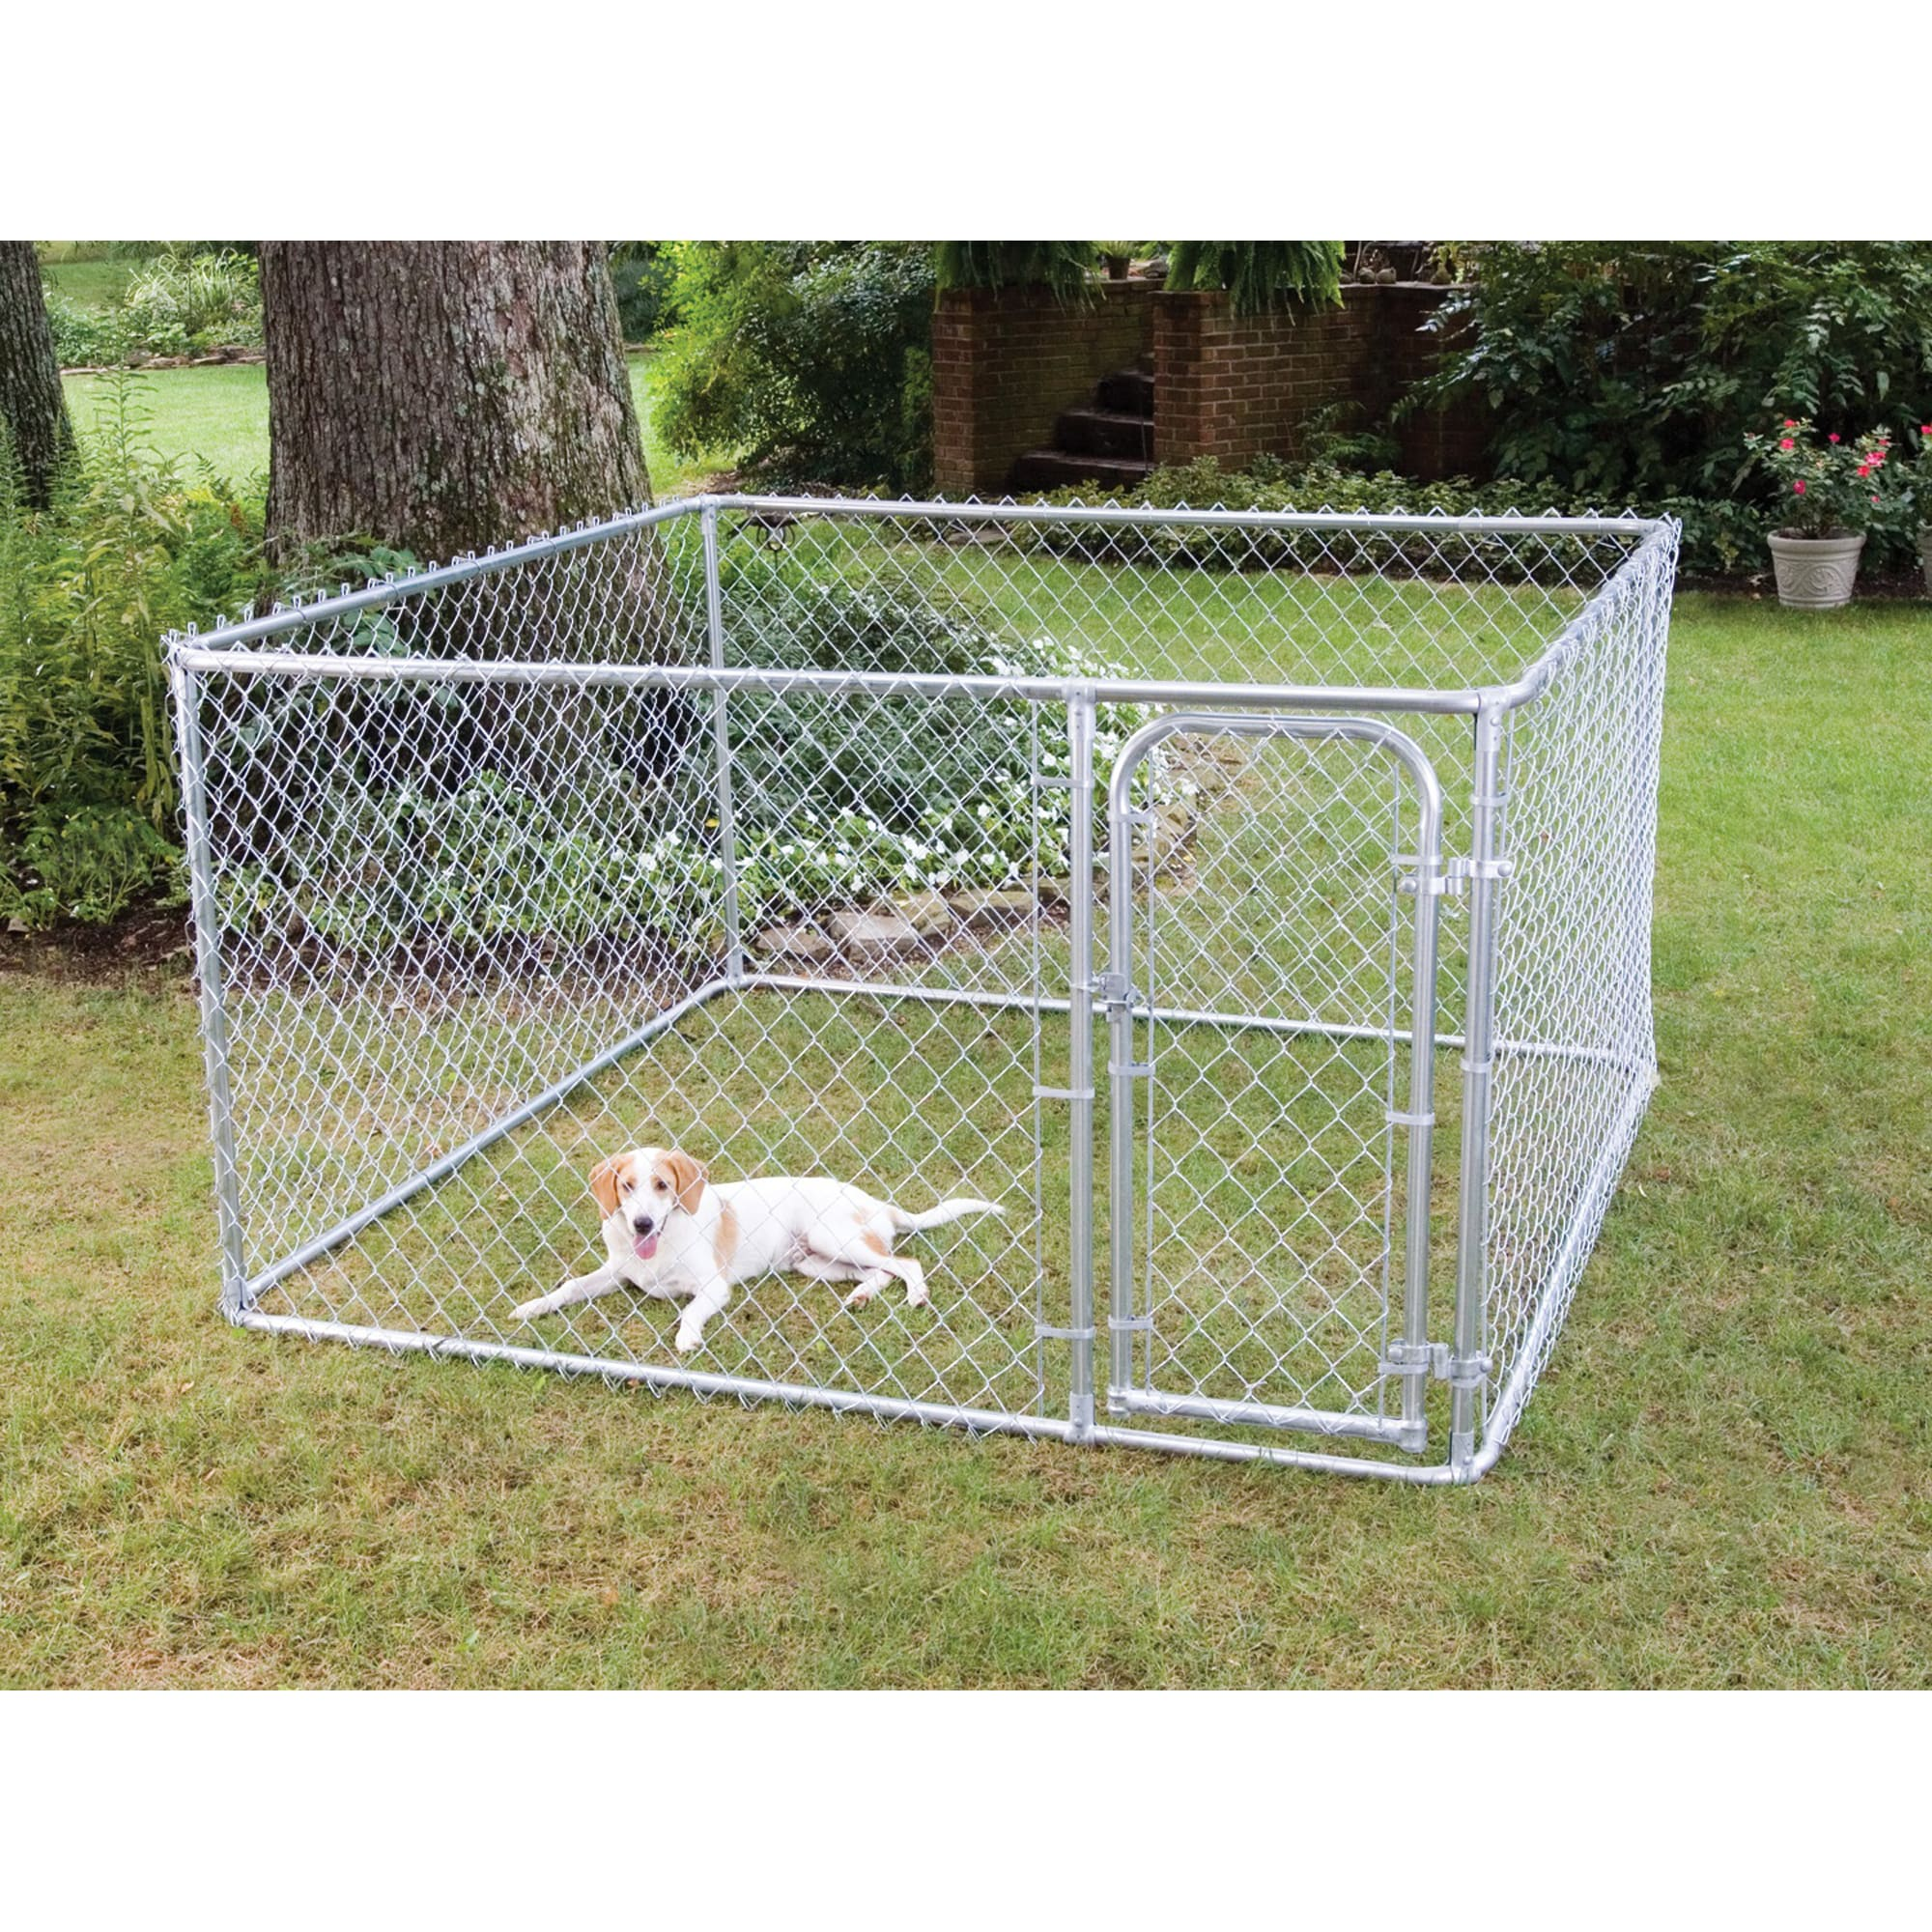 Fencemaster Do It Yourself Chain Link Kennel Petco